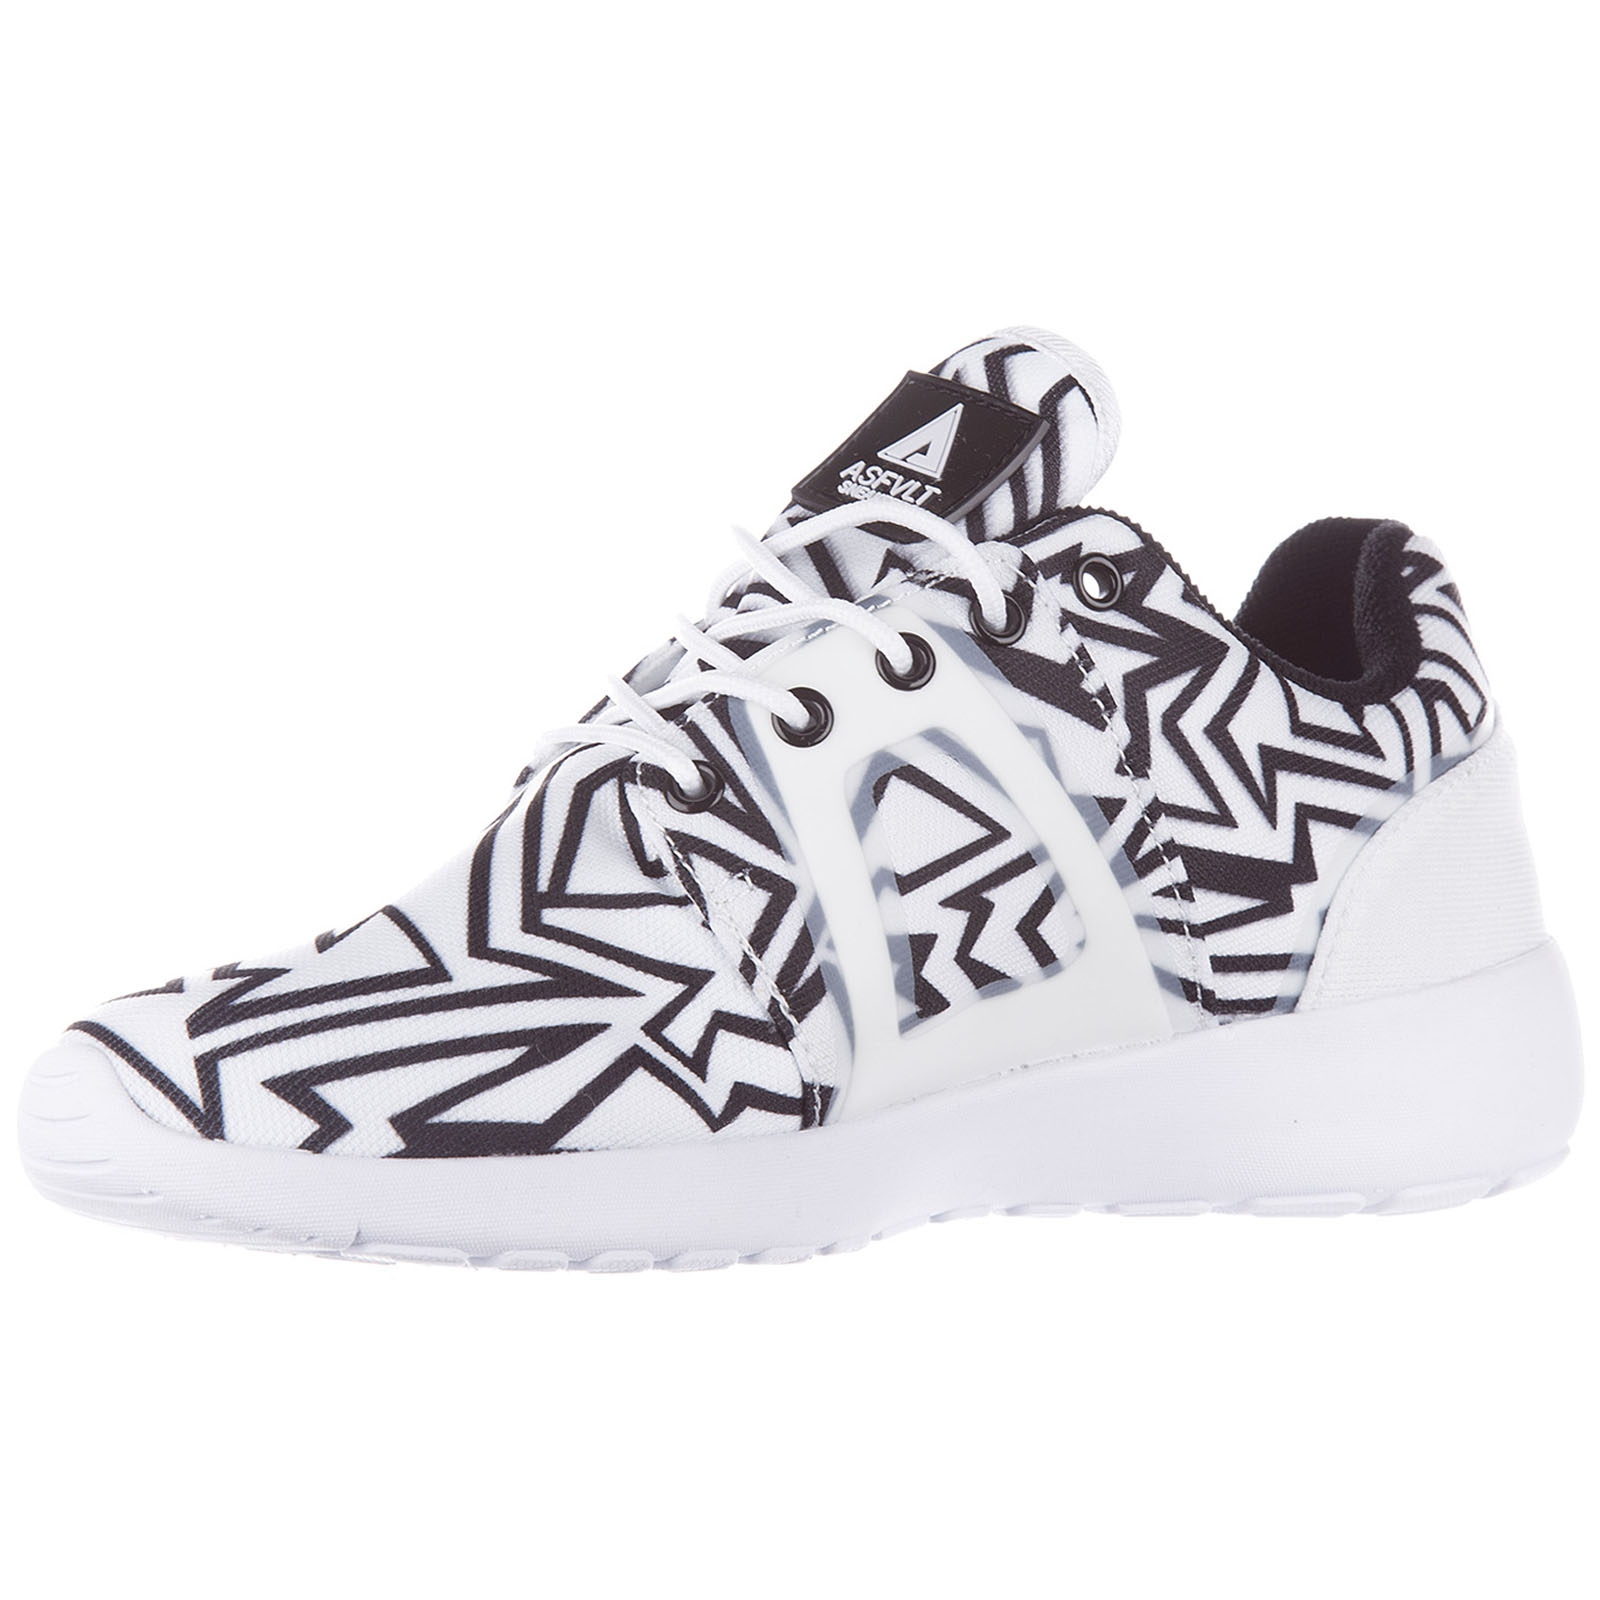 Chaussures baskets sneakers femme